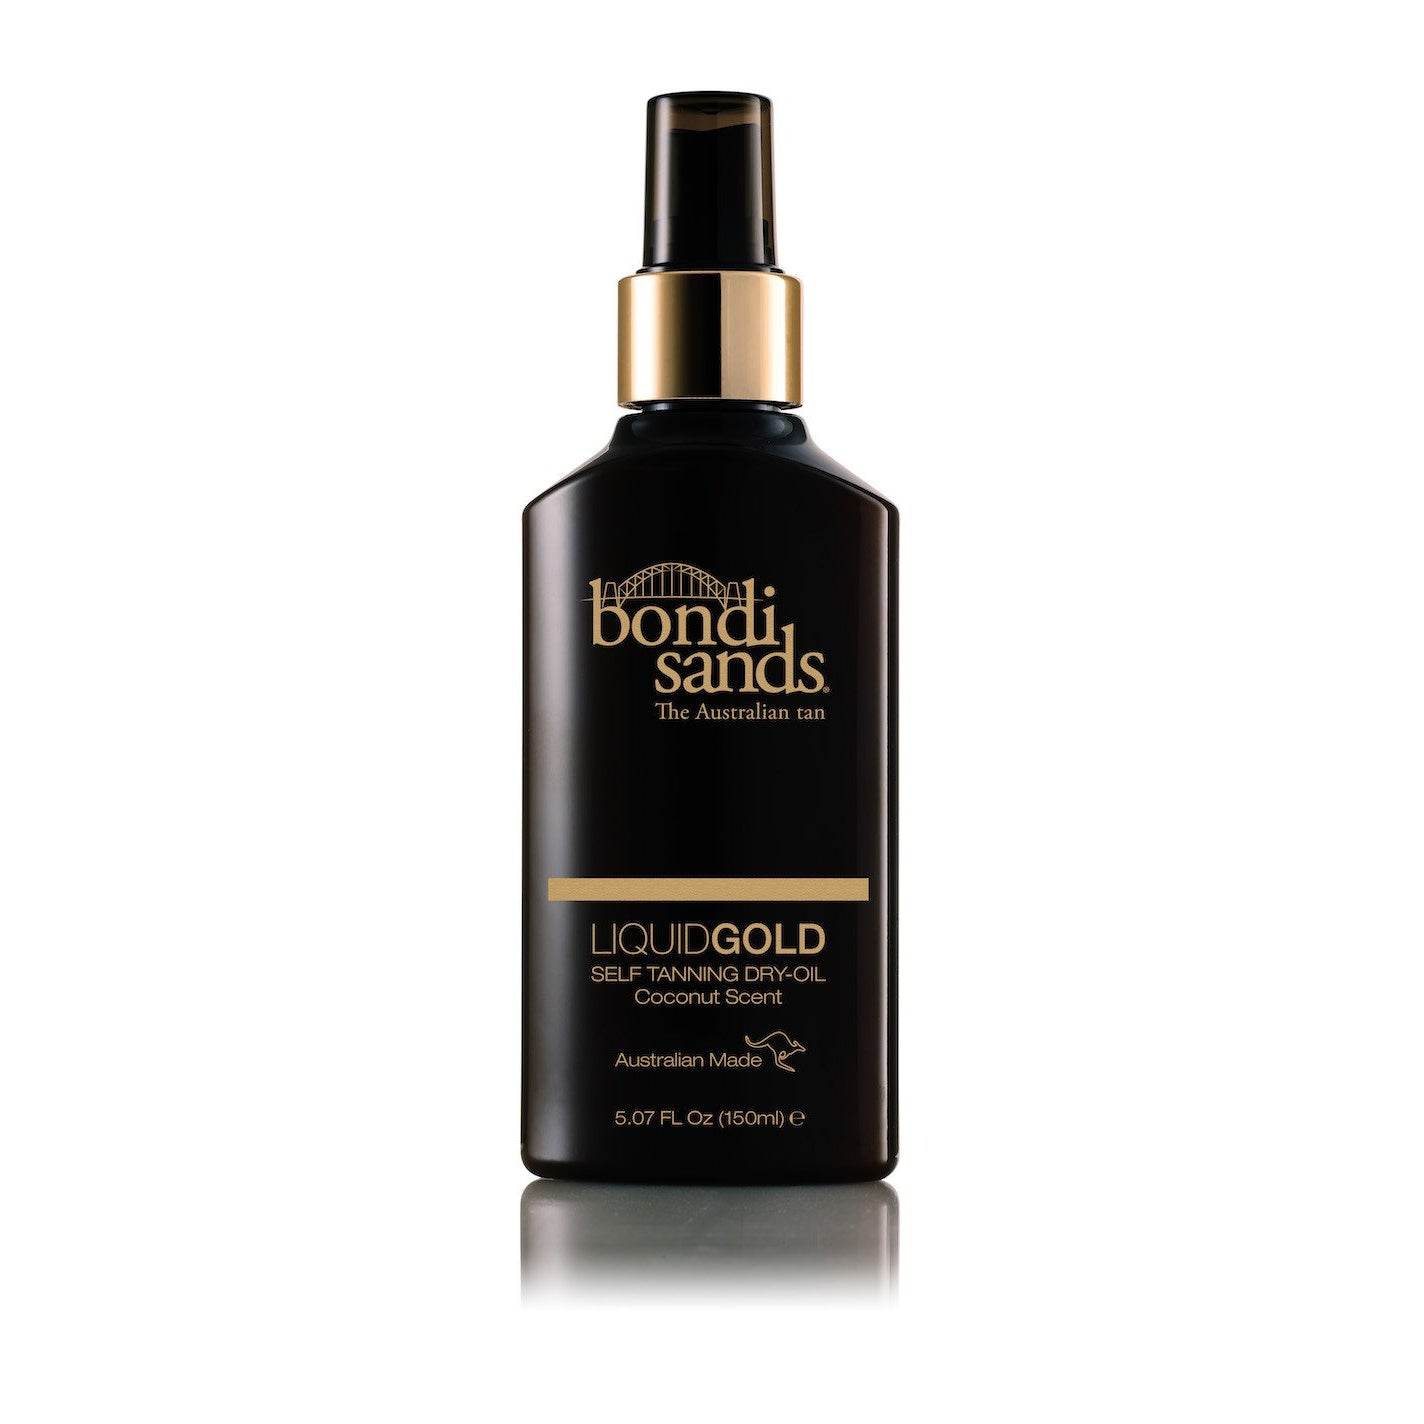 --Liquid Gold Dry Tanning Oil Bondi Sands - Let it Be Beauty - FREE SHIPPING - Afterpay and zipPay available - Beauty products--